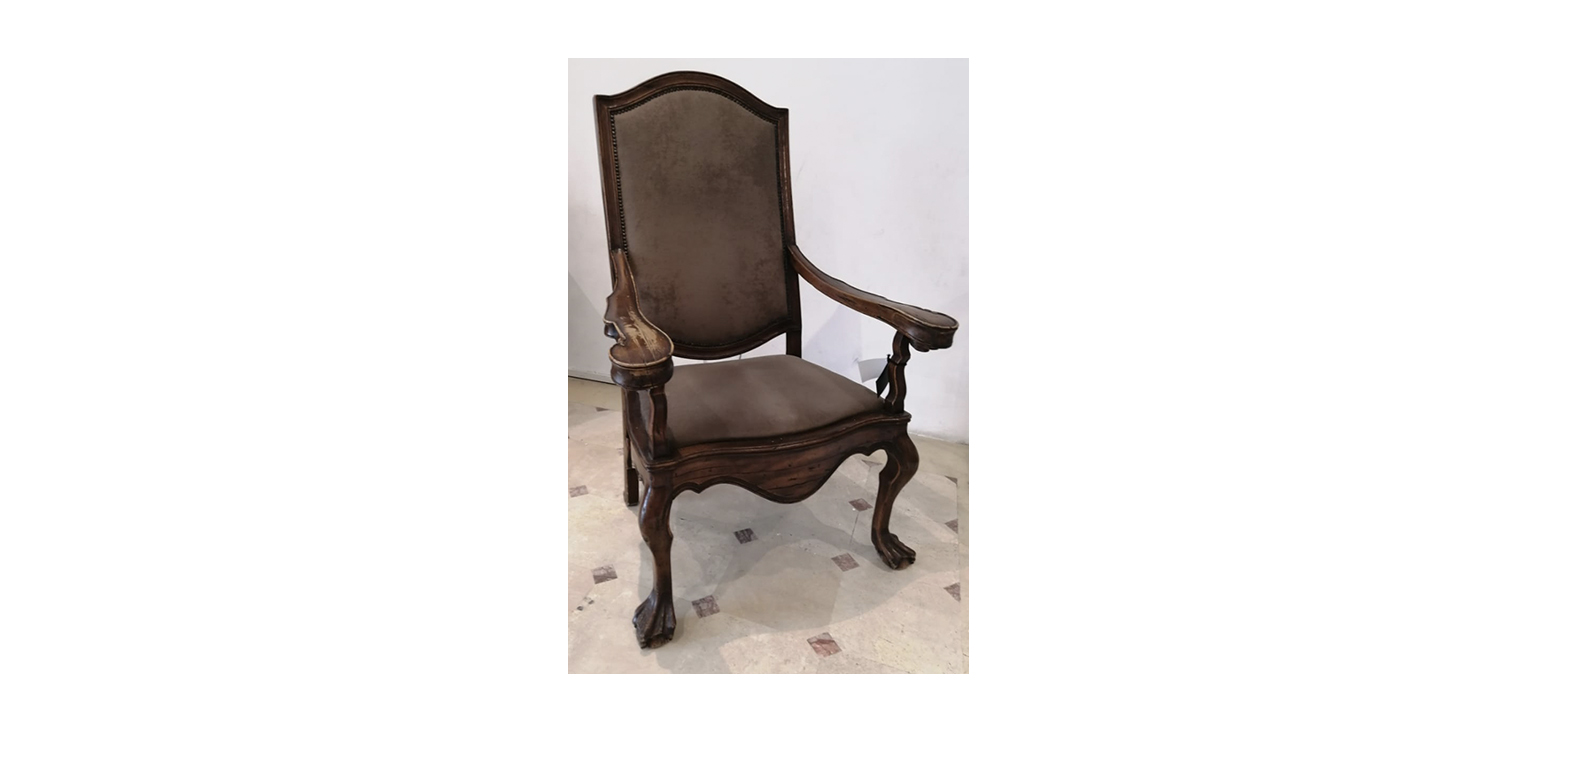 FRANZ MAYER CHAIR